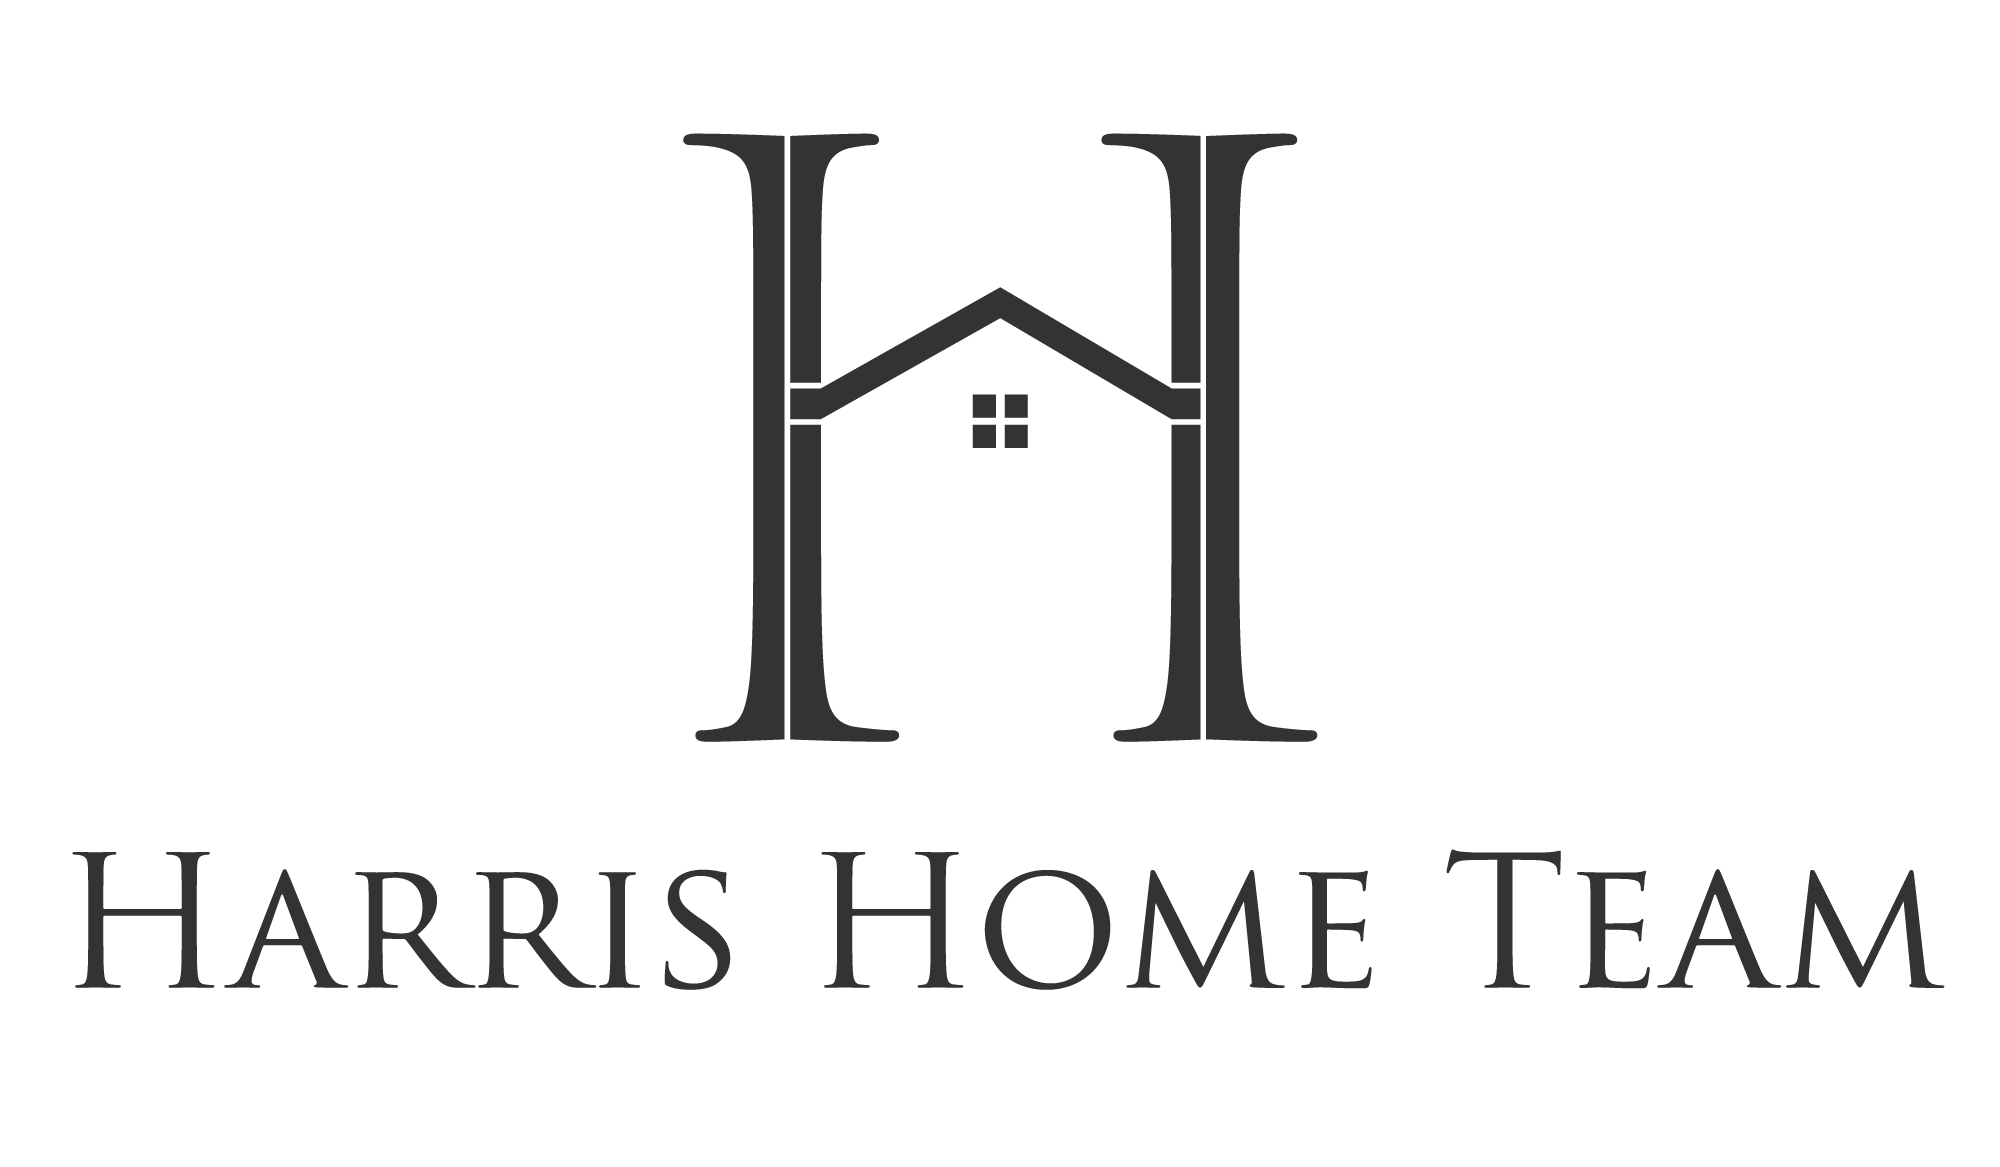 Harris-Home-Team.png